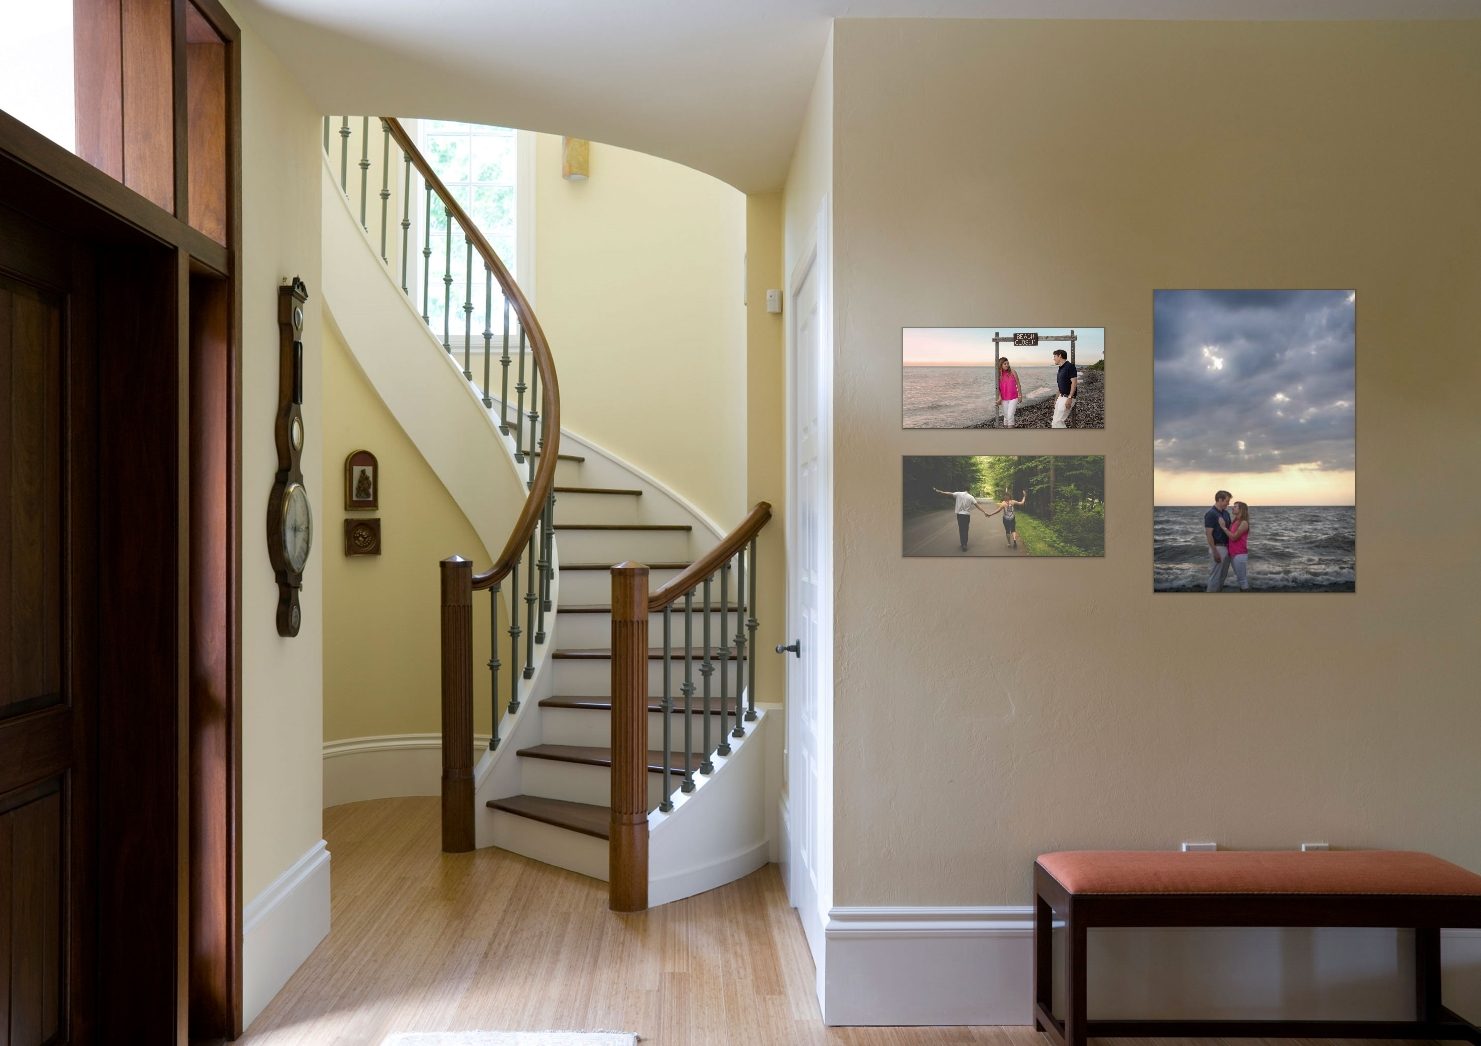 Custom wall art design from images of your spaces.